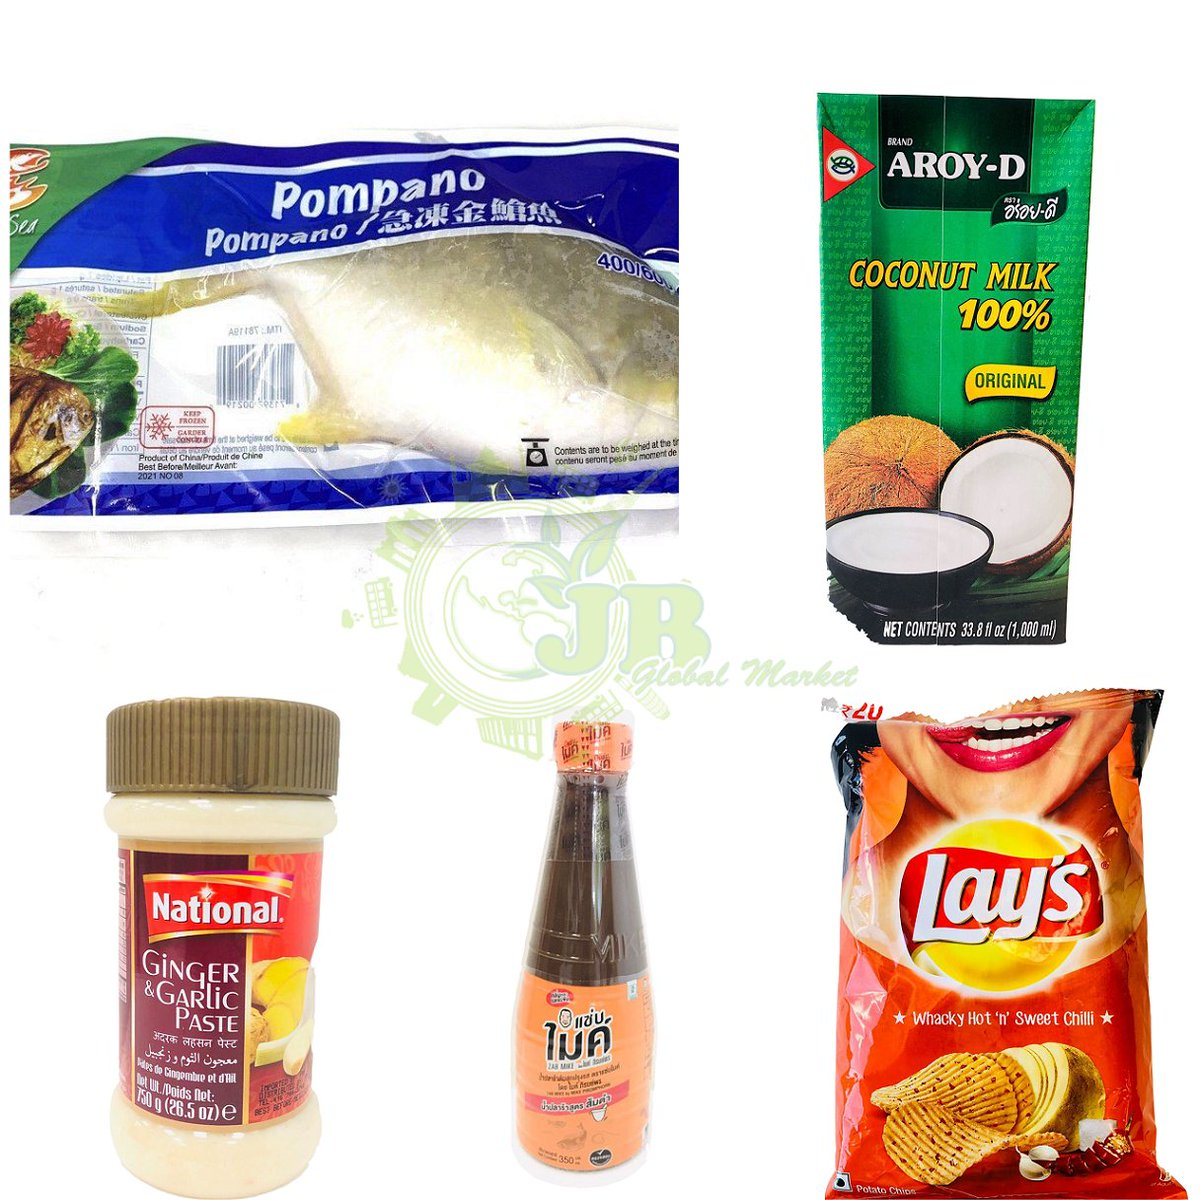 """Here are JB's """"5 MOST WANTED"""" items of last week. Come in and try these special items from different communities. 😋  #JBGM #International_food #Grocery_store #Top_5 #Most_wanted #Productsoftheweek #Sarnia #Canada  https://t.co/marO6g91sW https://t.co/vDPjM4Pgzl"""